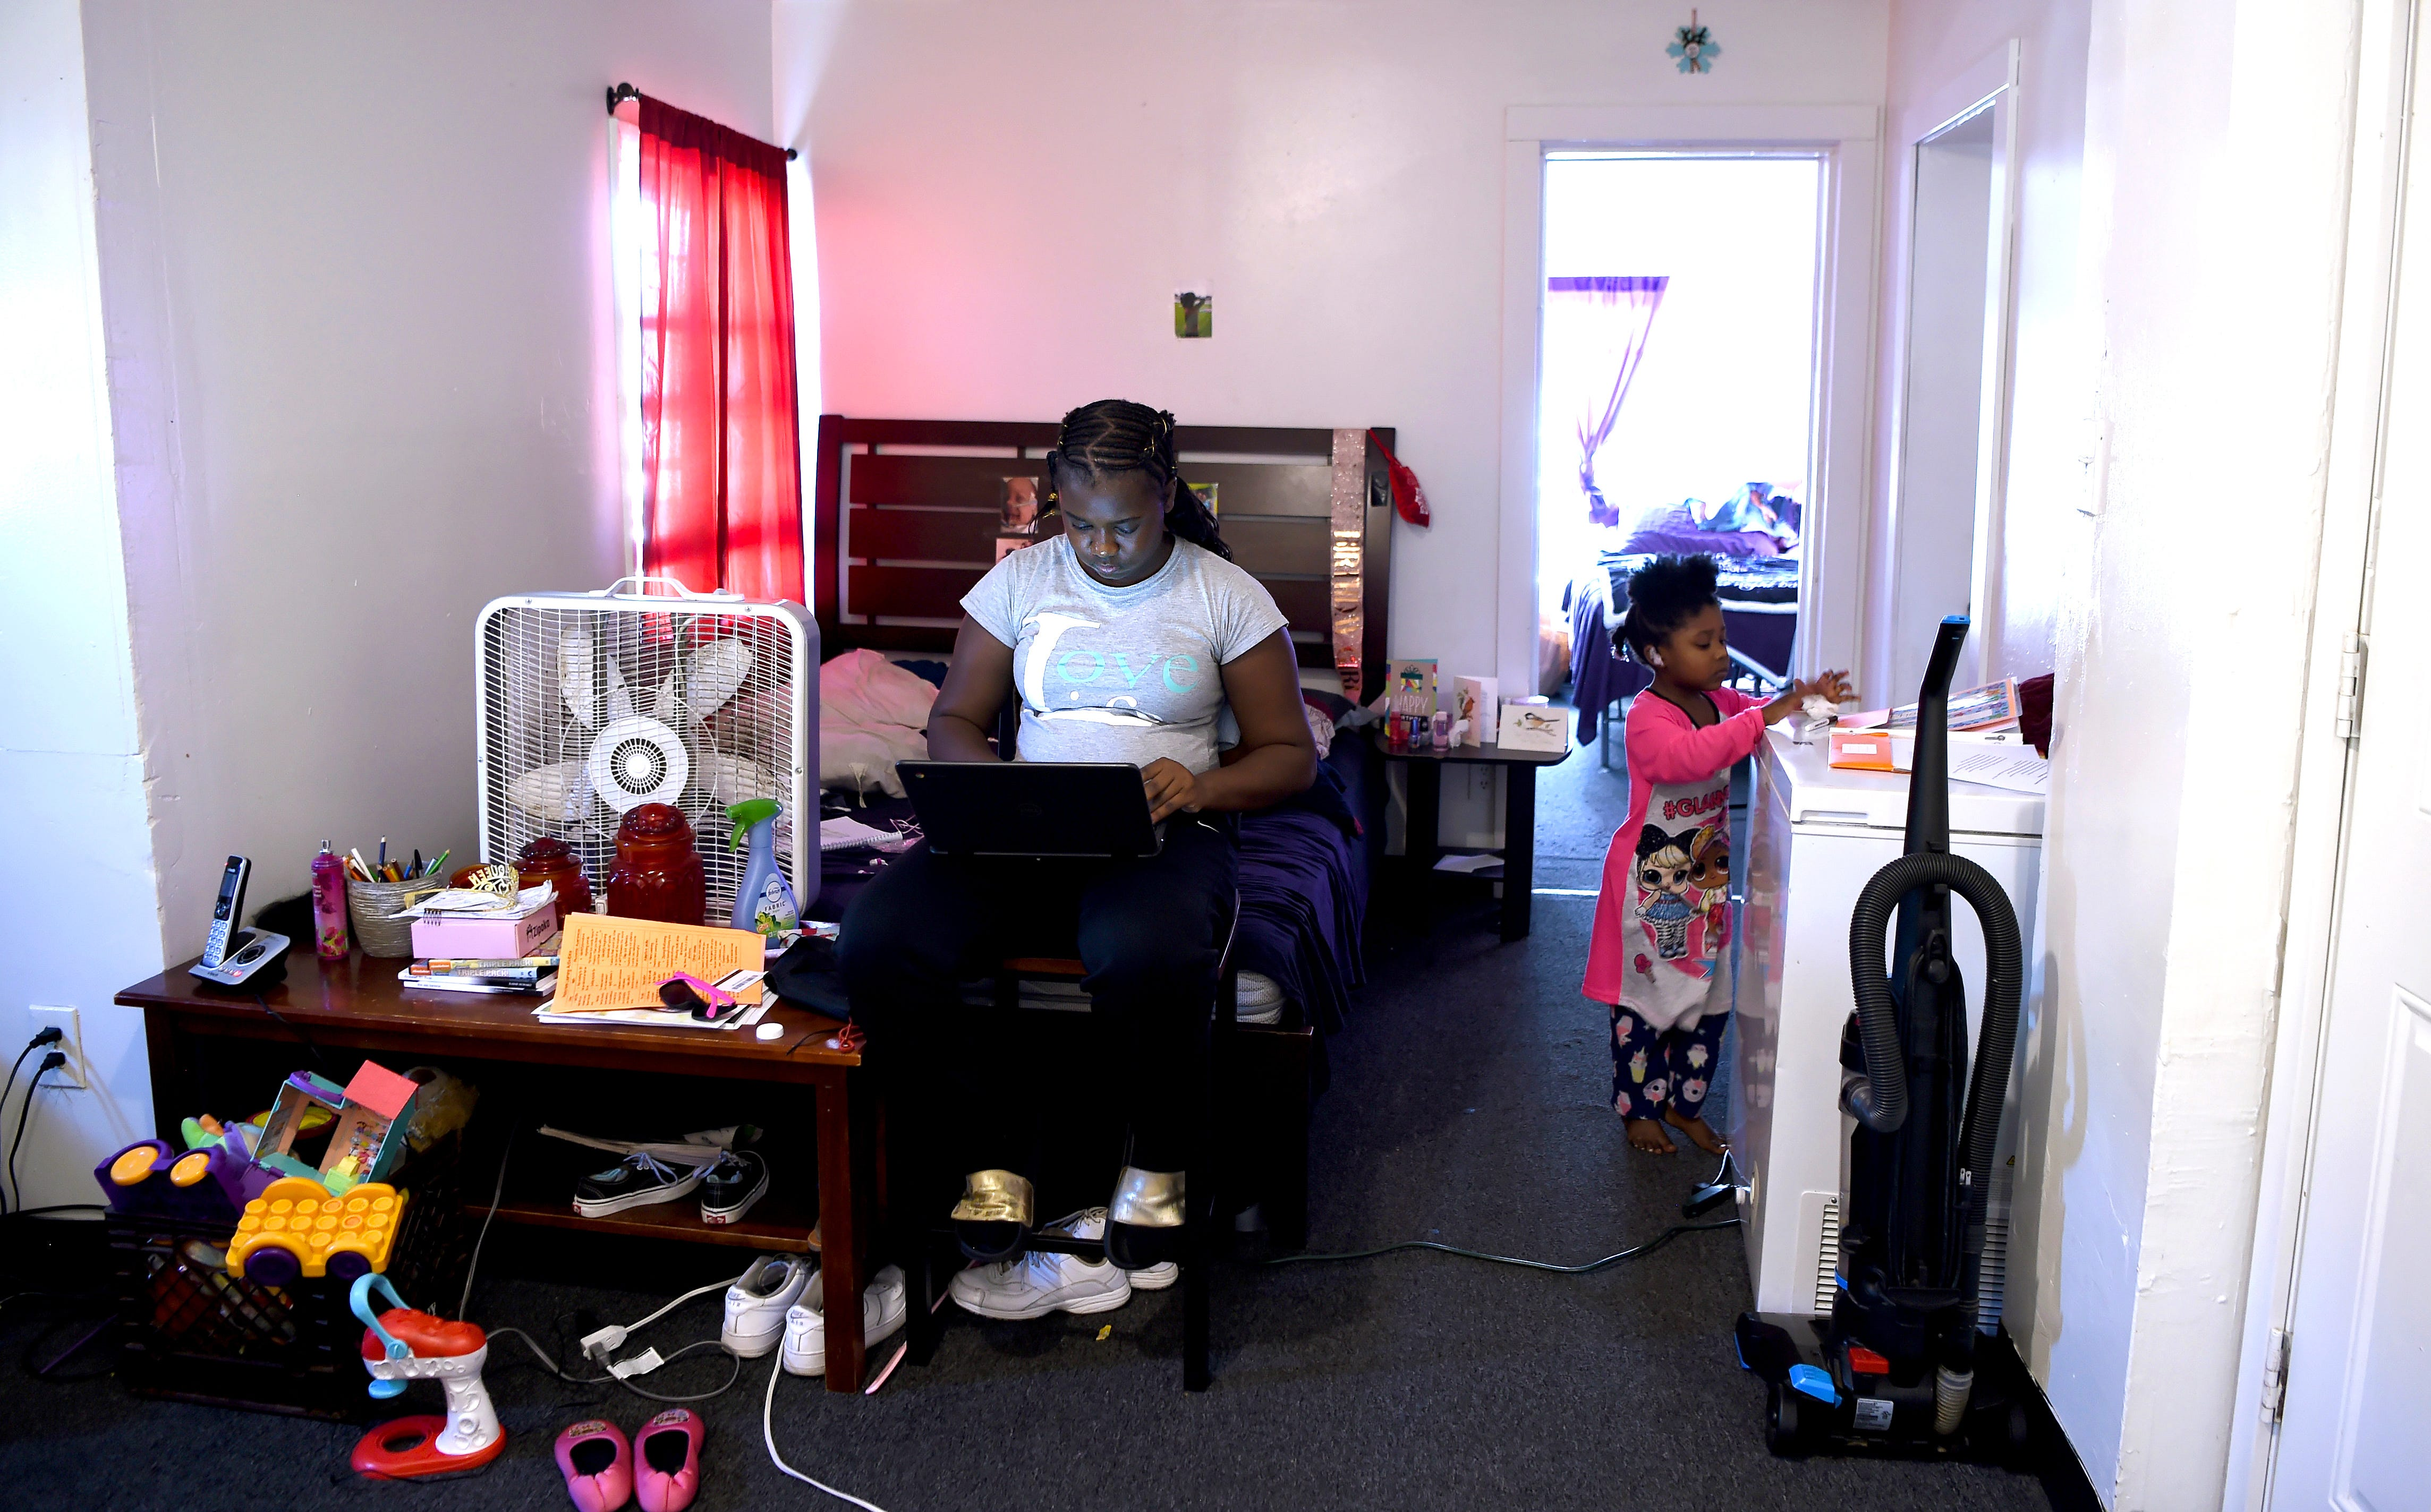 Raelin Powell attends her West Middle School classes remotely Oct. 15, 2020, in her family's apartment in Binghamton, N.Y. Her niece Phoenix Barnett, 3, is also enrolled in an online learning program.